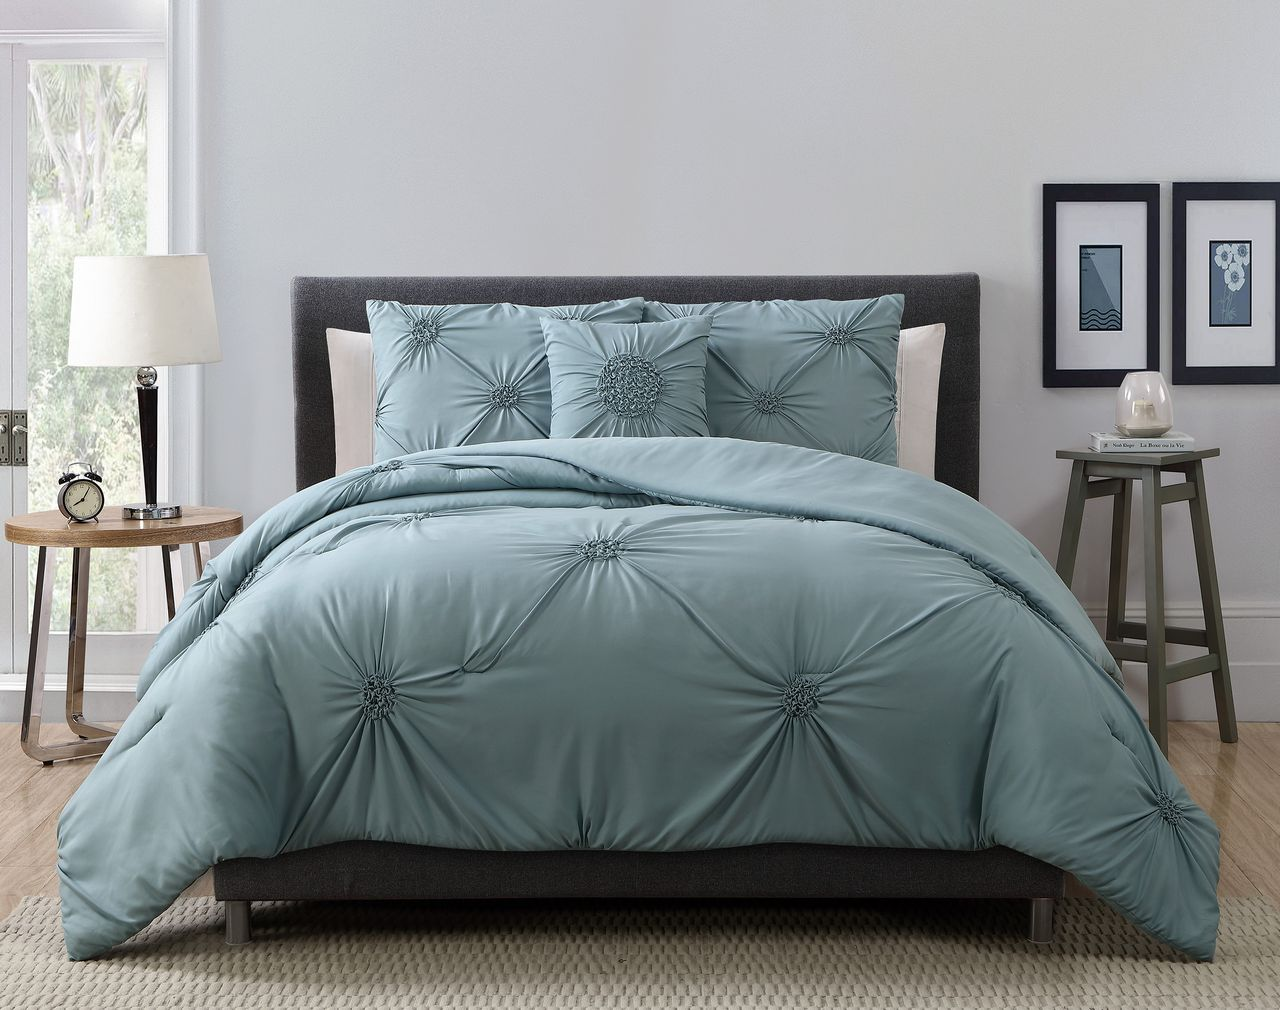 Charcoal Grey Bedding 8 Piece Paige Charcoal Gray Bed In A Bag Set